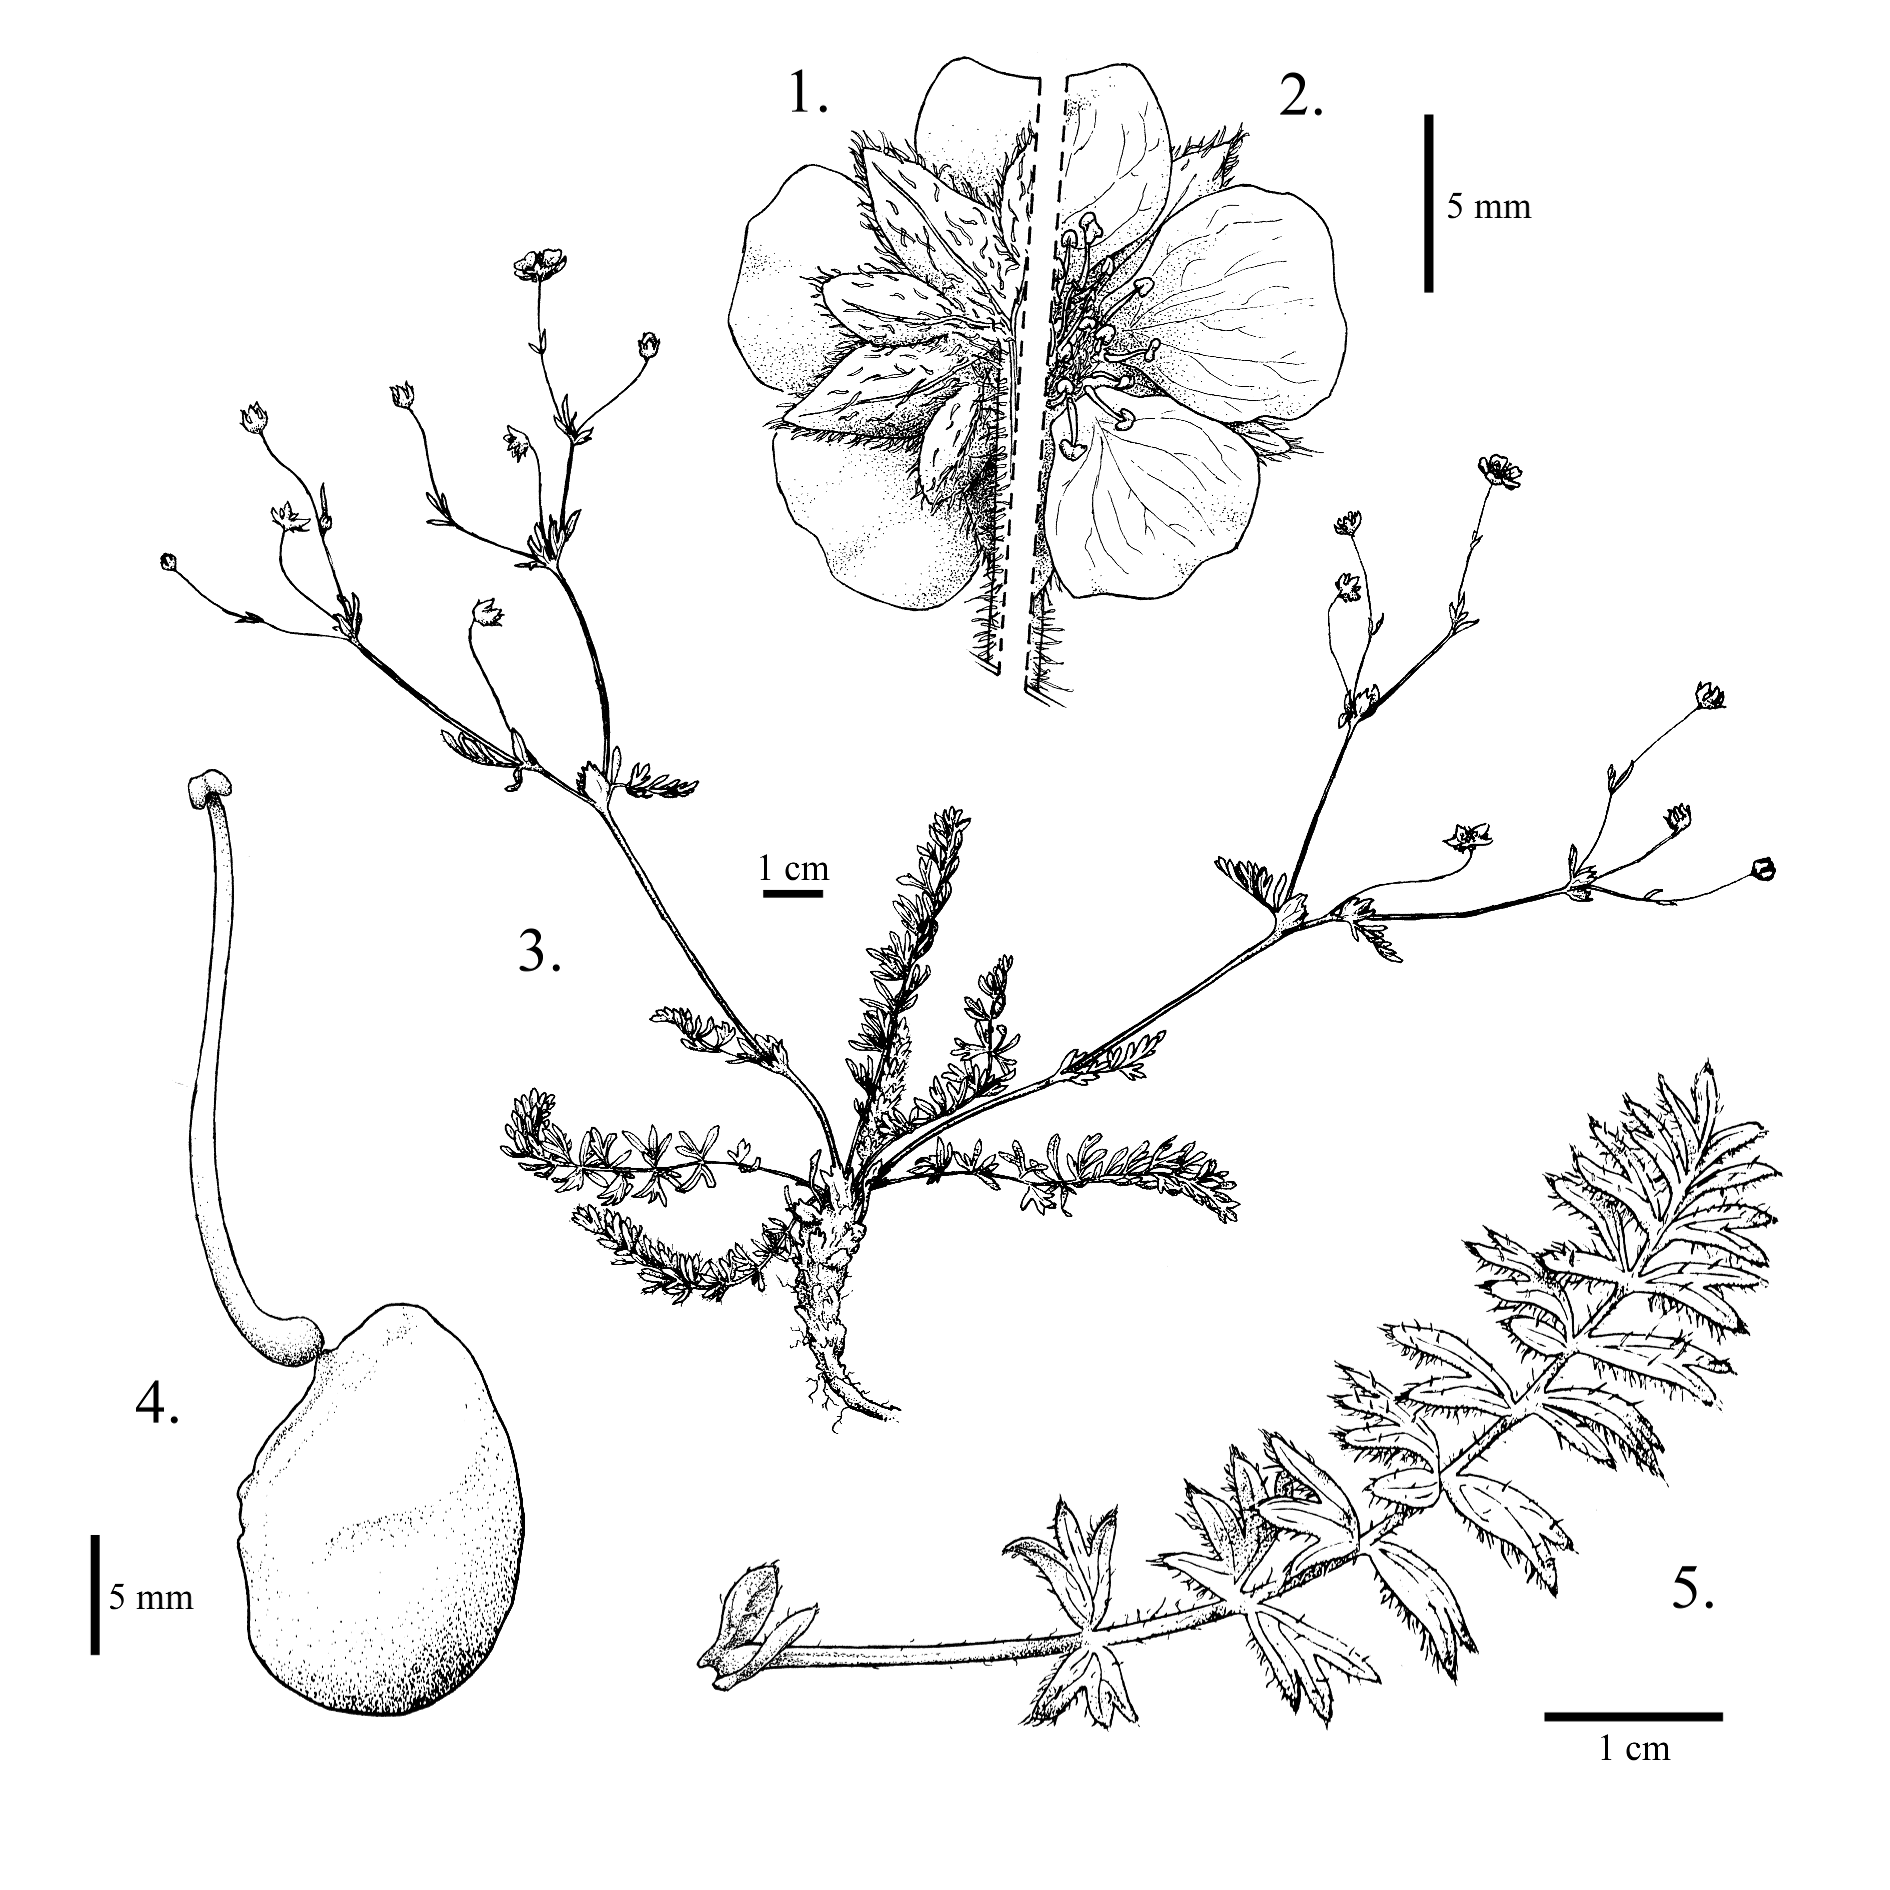 Potentilla versicolor var. darrachii taxonomic illustration by Alexa DiNicola